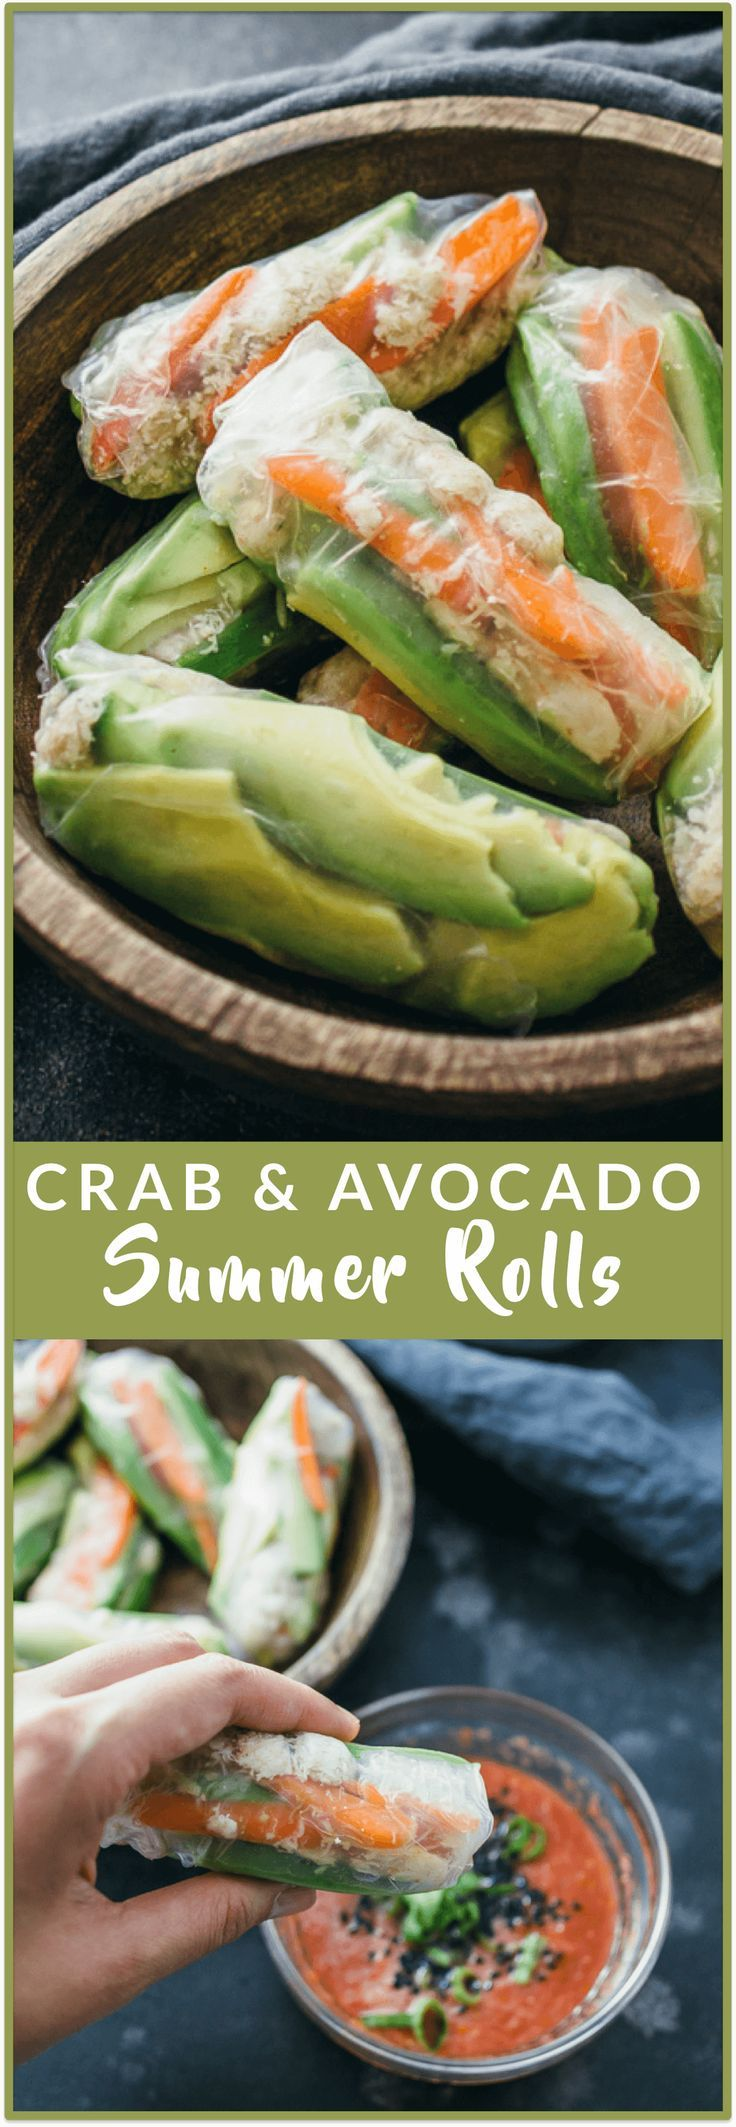 Crab and avocado summer rolls - Bite into these crab and avocado summer rolls! This Vietnamese and Thai inspired recipe has crab meat, sliced avocado, cucumber, and carrots wrapped together in a summer roll with a spicy red dipping sauce. It's an easy and healthy dish for when you are looking for something lighter to eat. - http://savorytooth.com